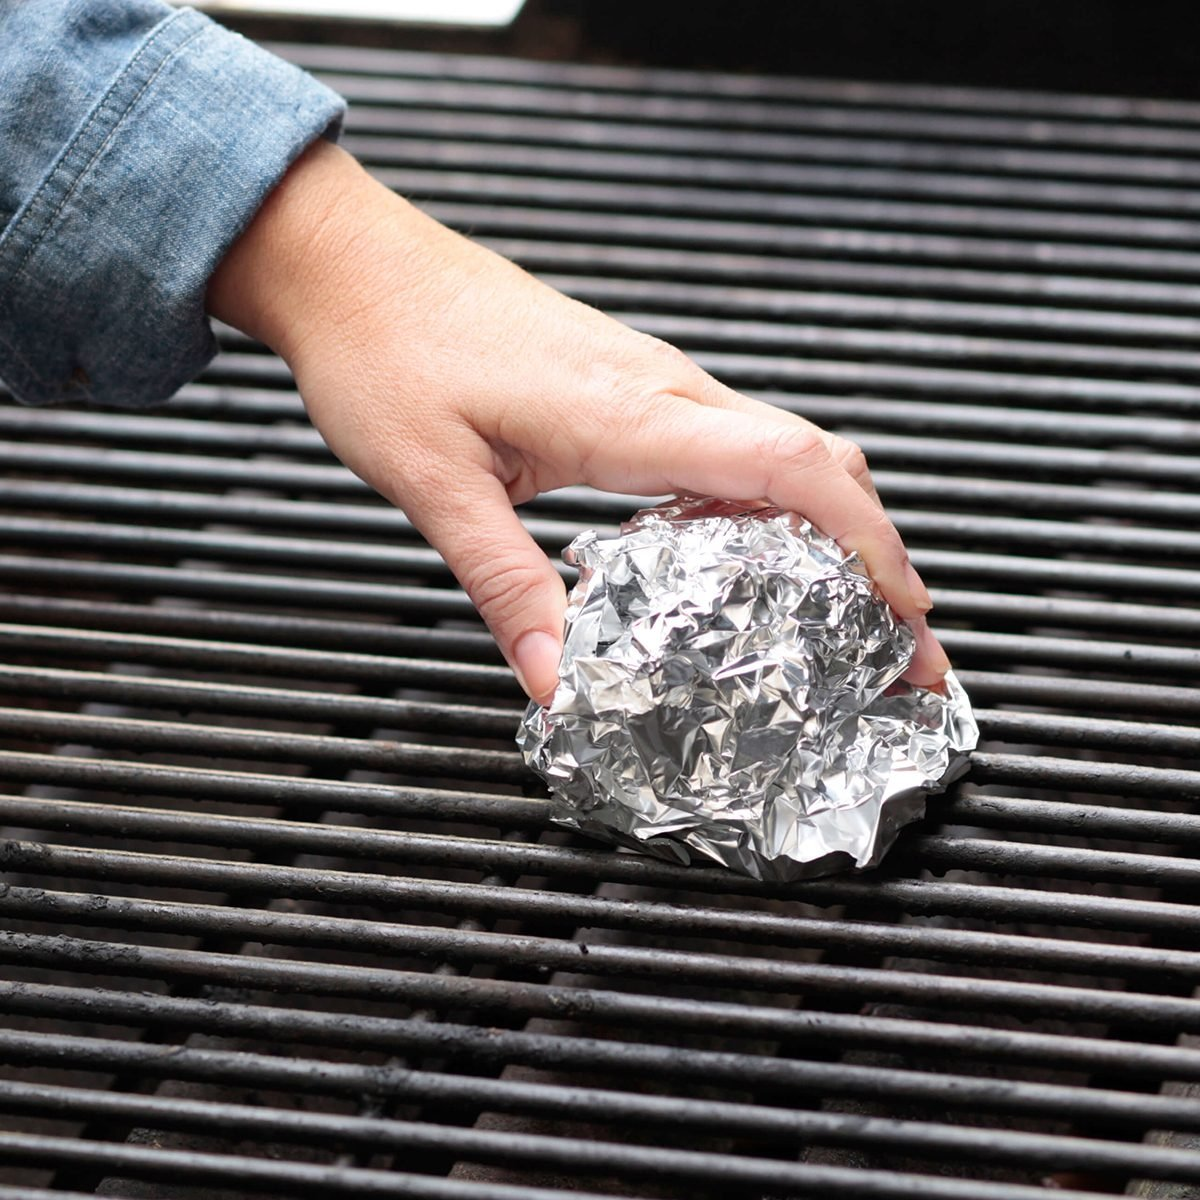 Wiping grill with ball of foil